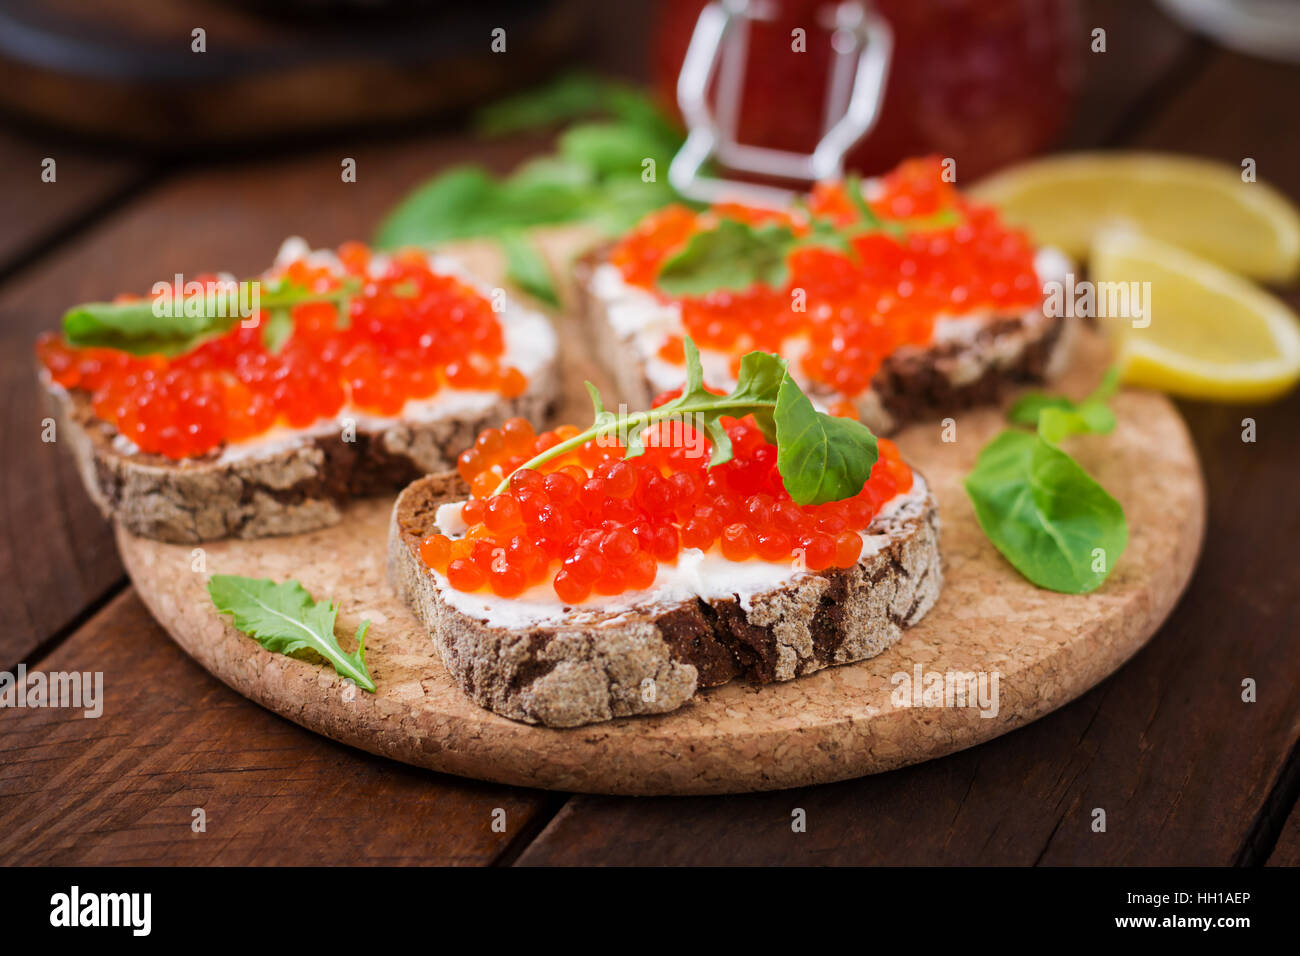 Sandwich with red caviar - Stock Image